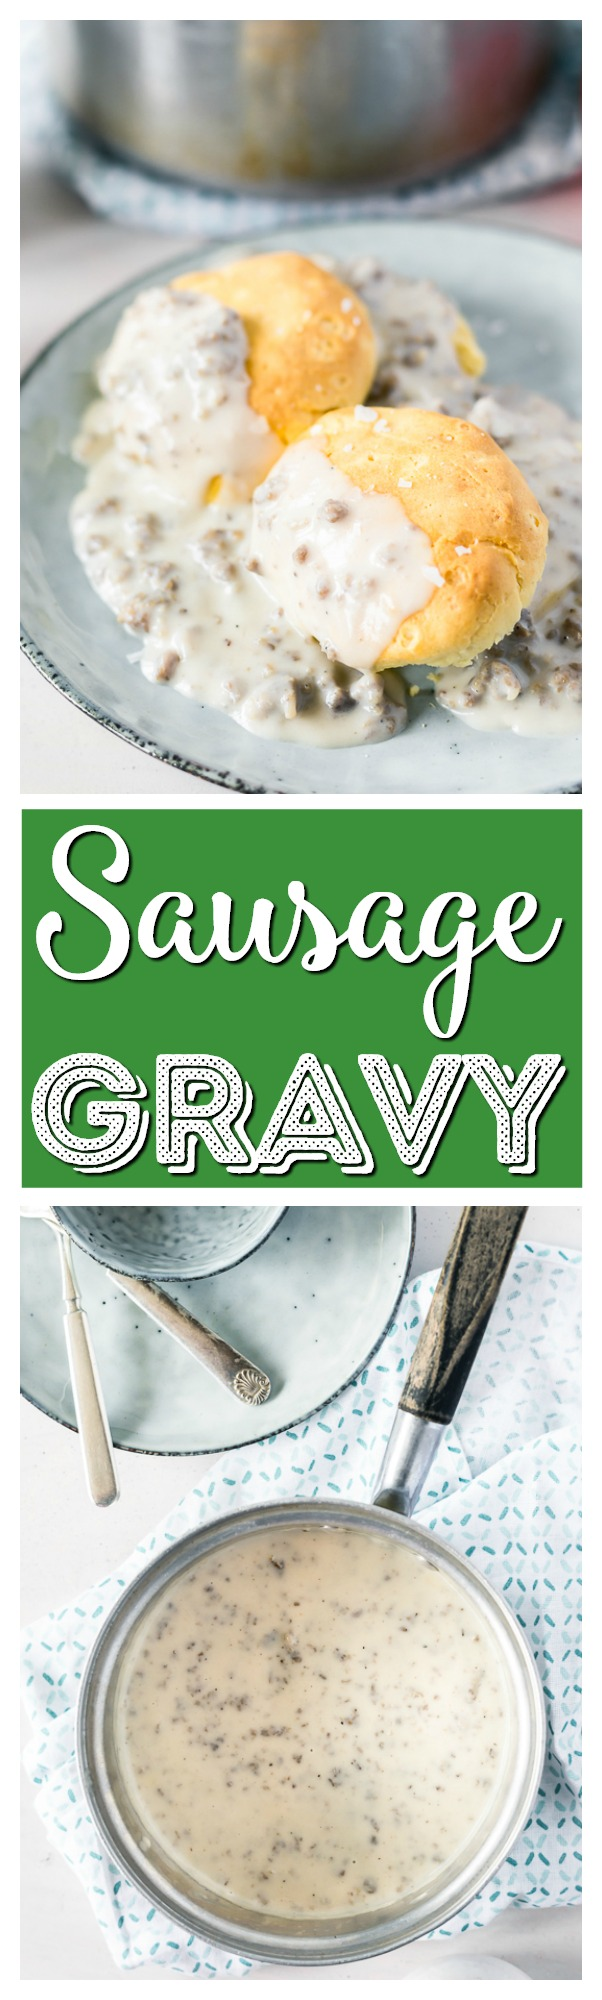 This Sausage Gravy recipe is loaded with flavor, made with ground pork, rich cream, and a touch of garlic, plus a small splash of apple cider vinegar really brings the dish to life! via @sugarandsoulco